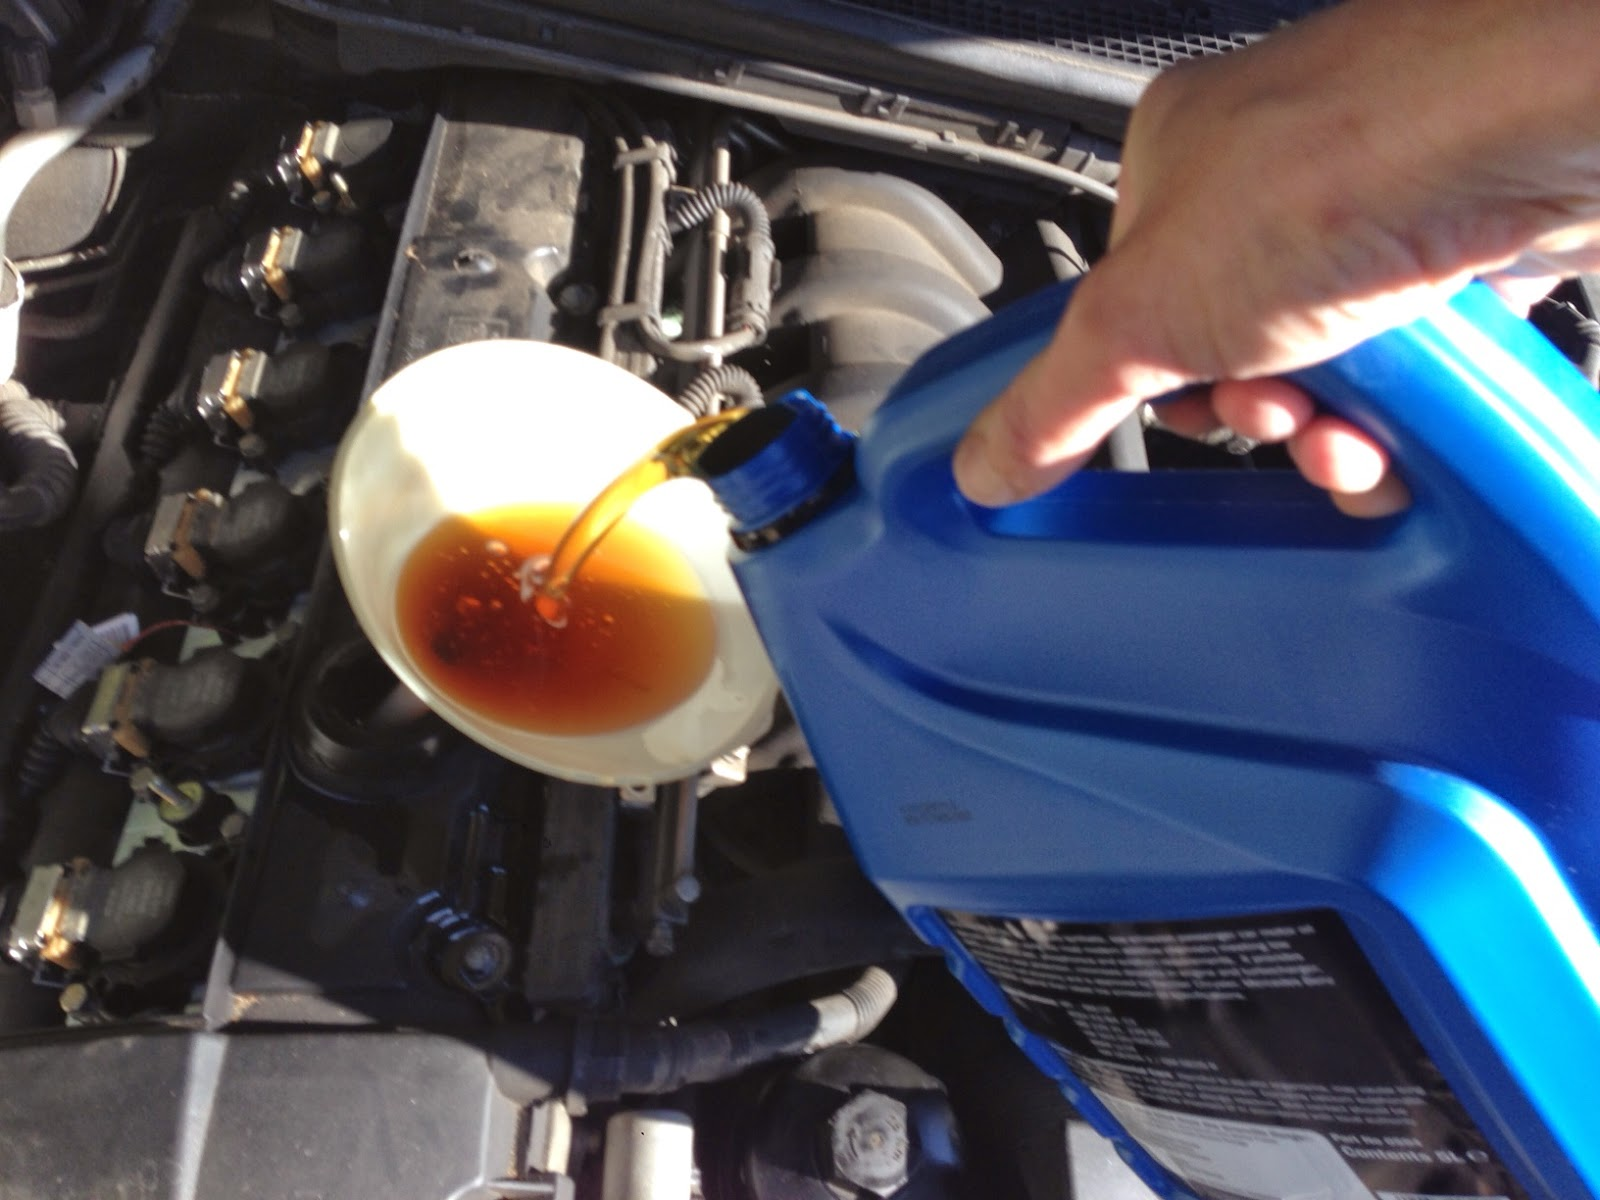 Filling the engine with new oil